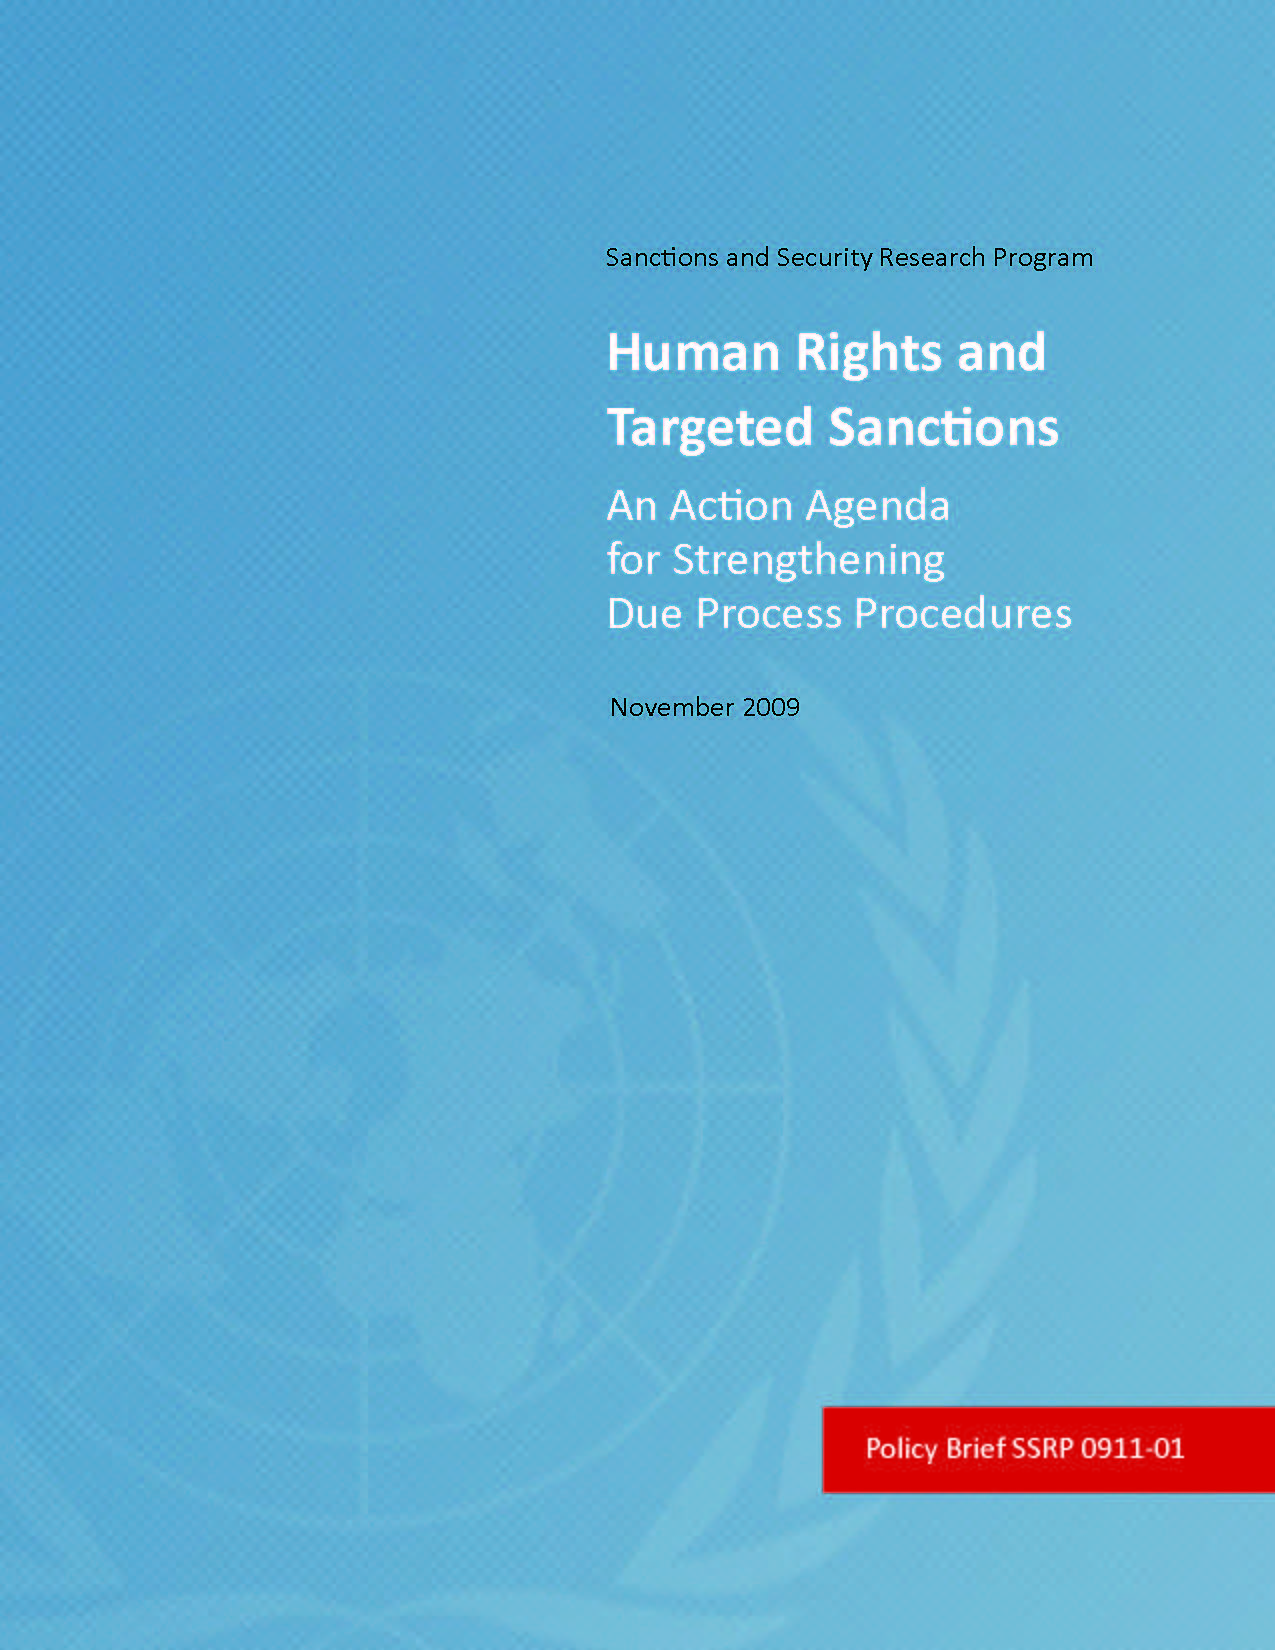 Human Rights and Targeted Sanctions: An Action Agenda for Strengthening Due Process Procedures